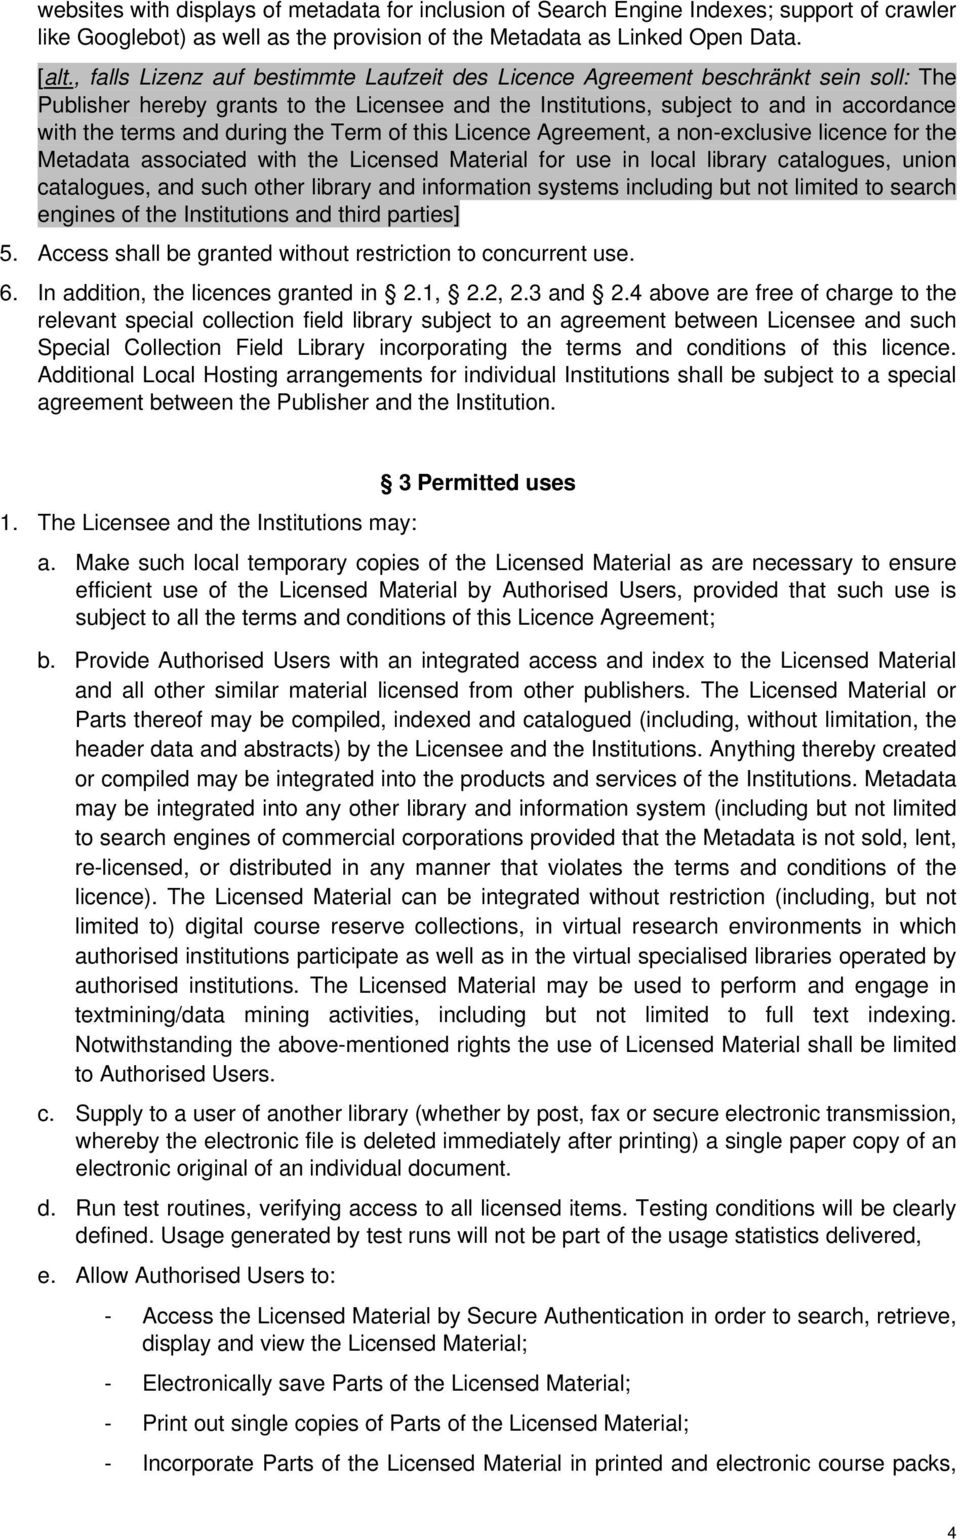 during the Term of this Licence Agreement, a non-exclusive licence for the Metadata associated with the Licensed Material for use in local library catalogues, union catalogues, and such other library